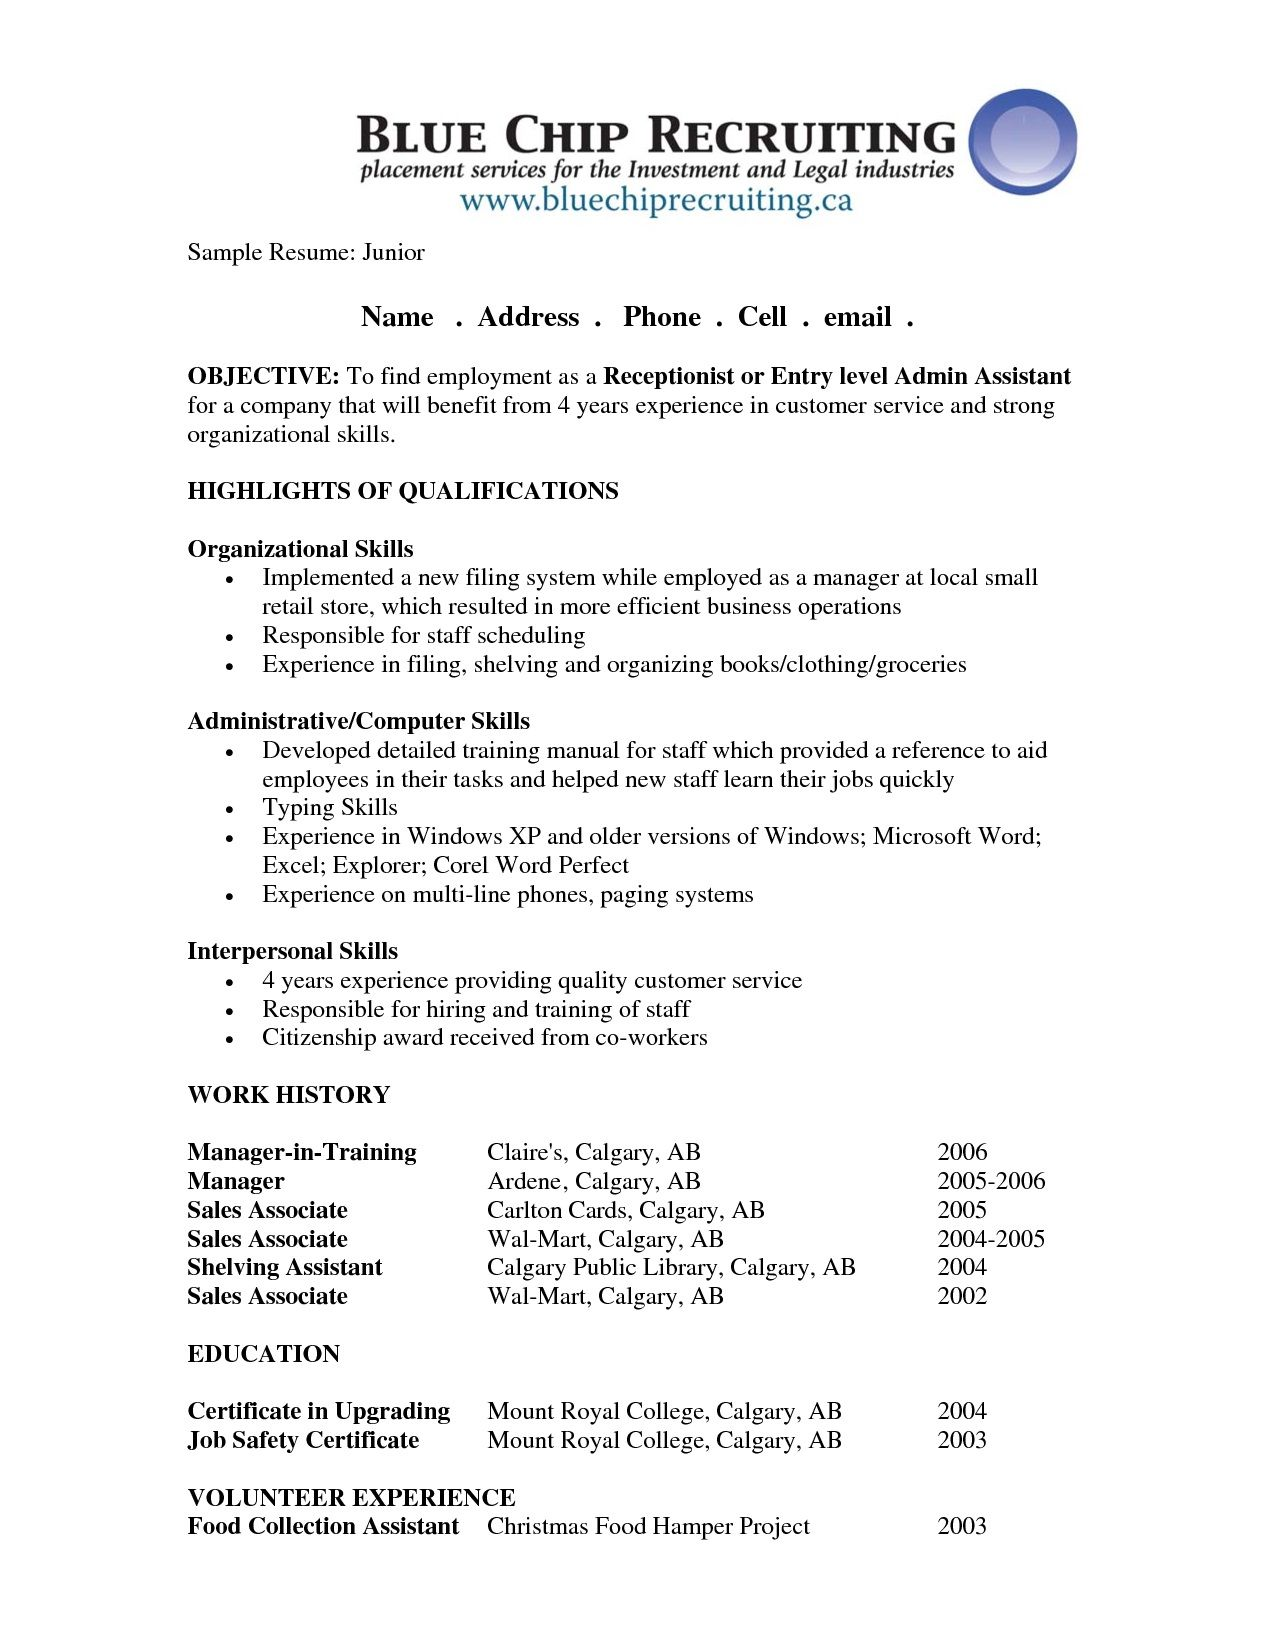 receptionist resume objective sample are really great examples of resume and curriculum vitae for those who are looking for guidance - Administrative Assistant Resume Objective Sample